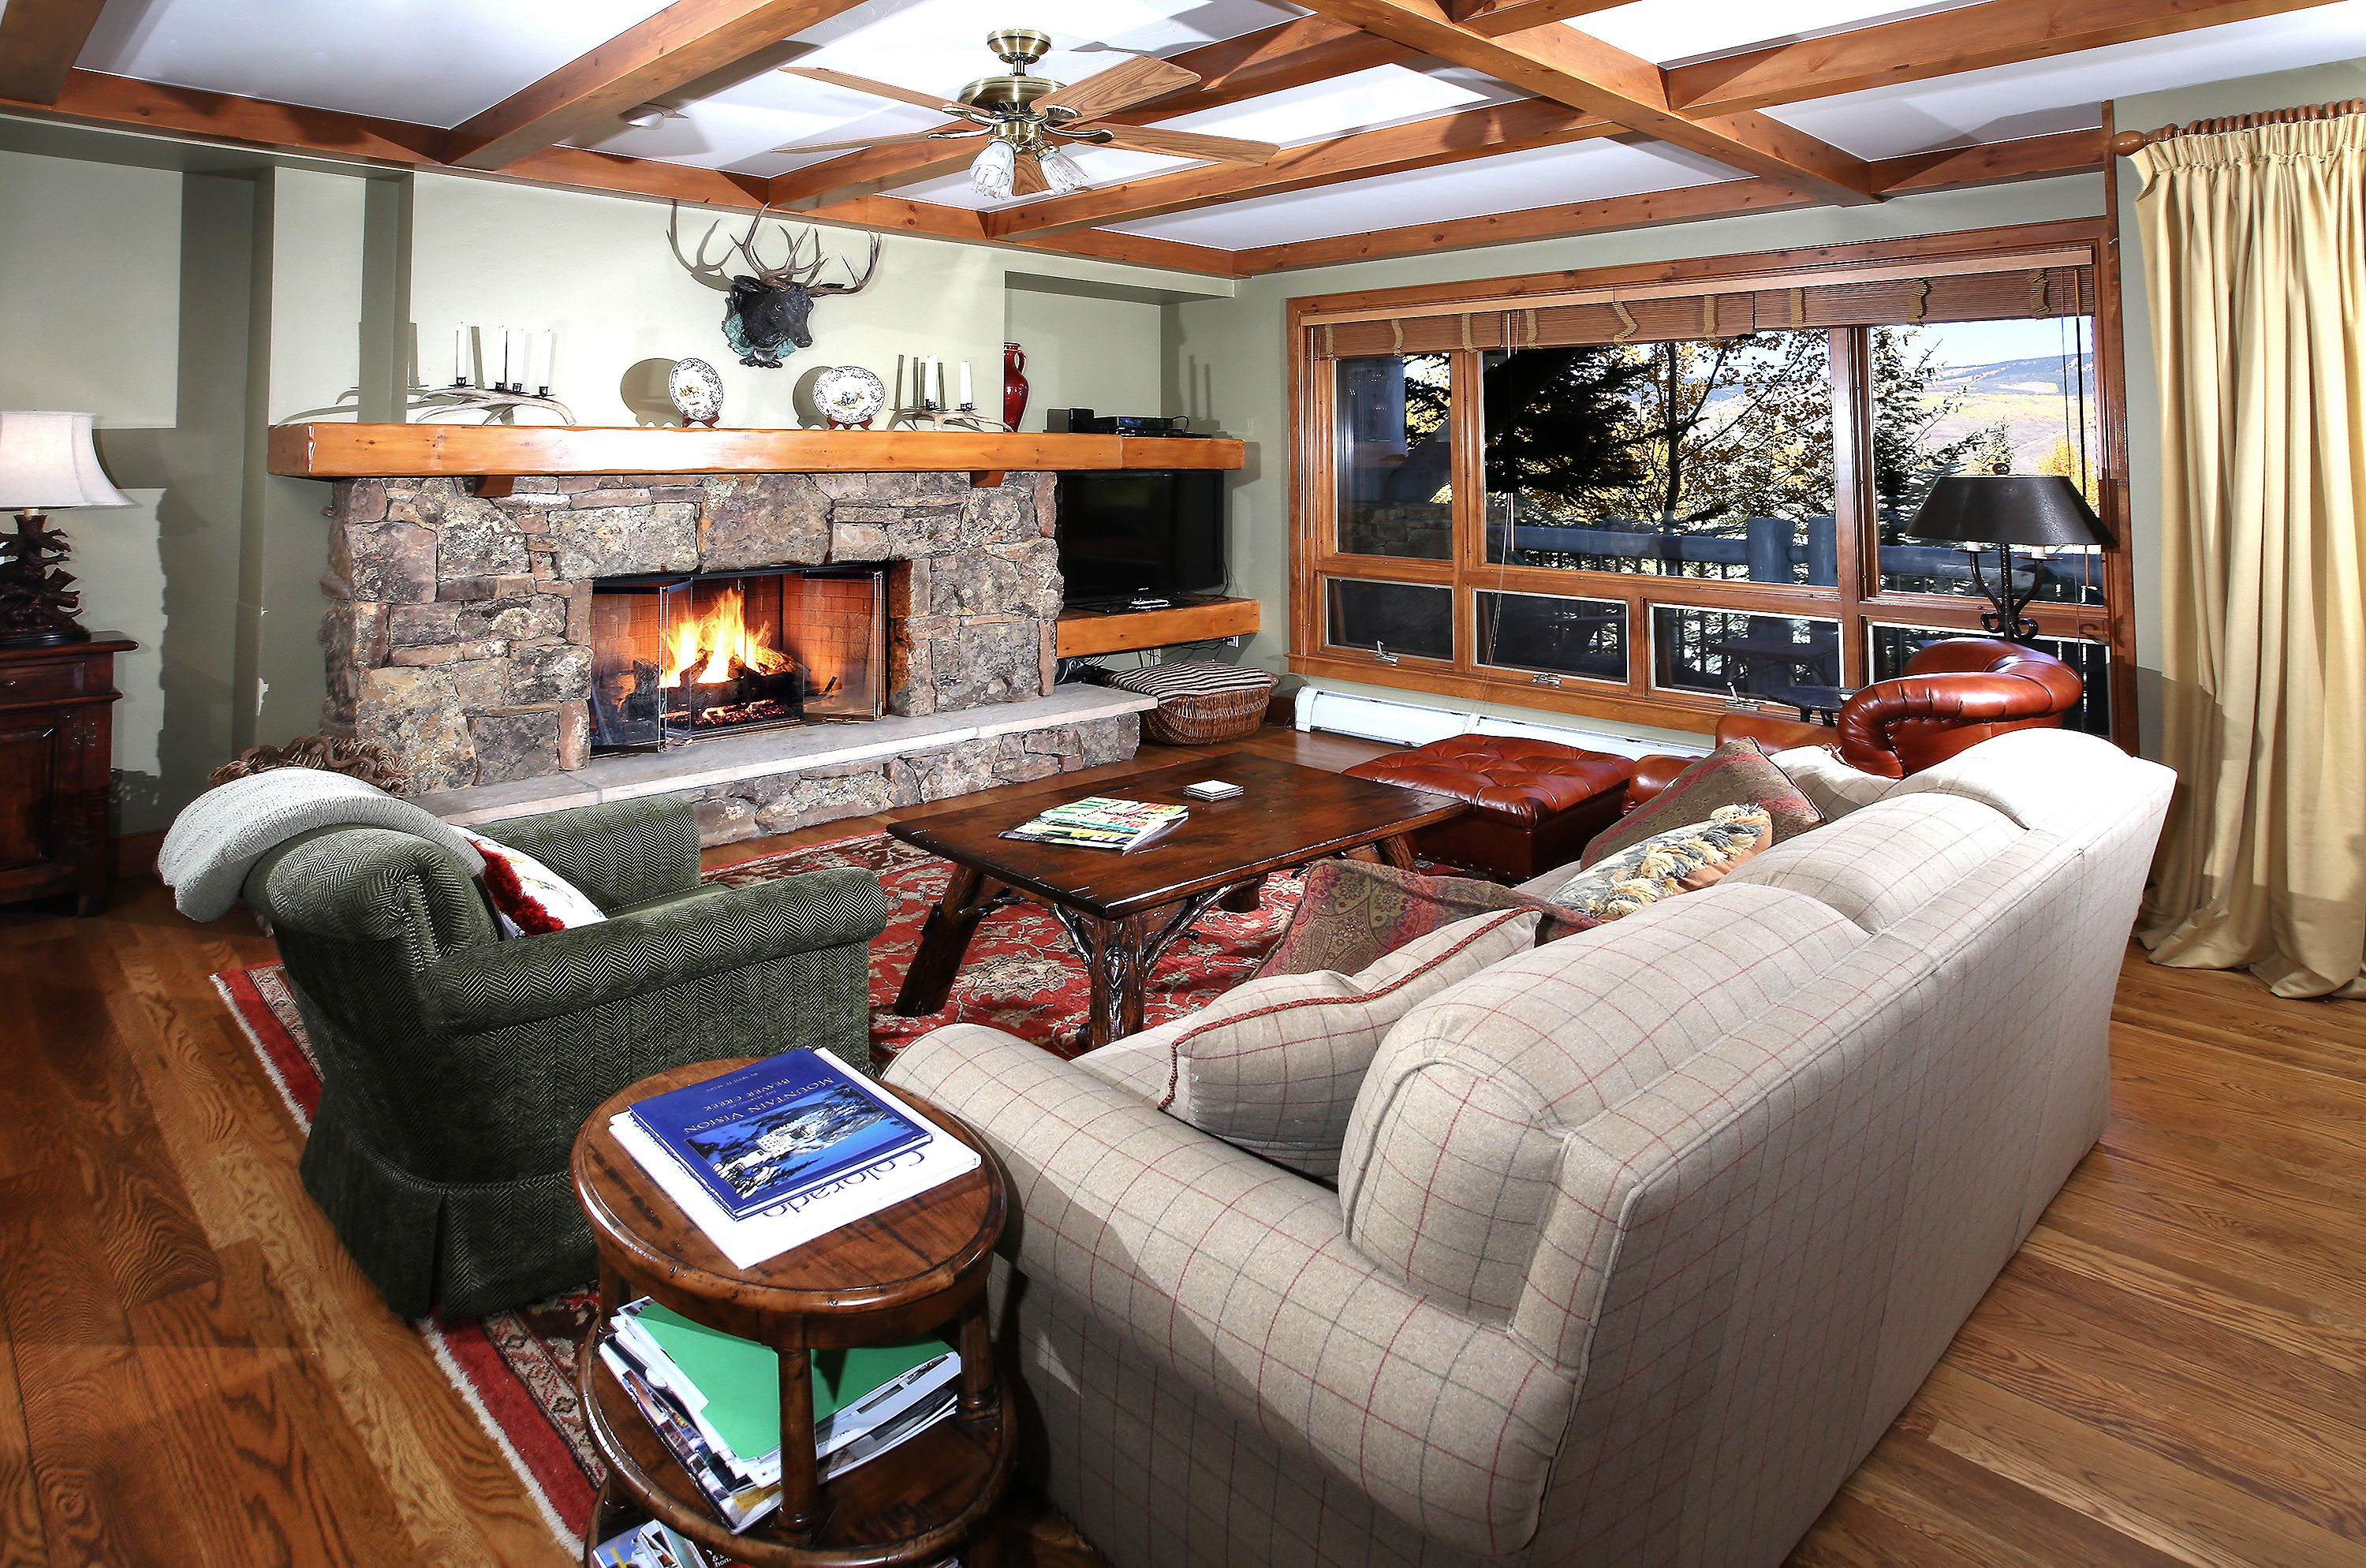 205 Bear Paw # C304 Beaver Creek, CO 81620